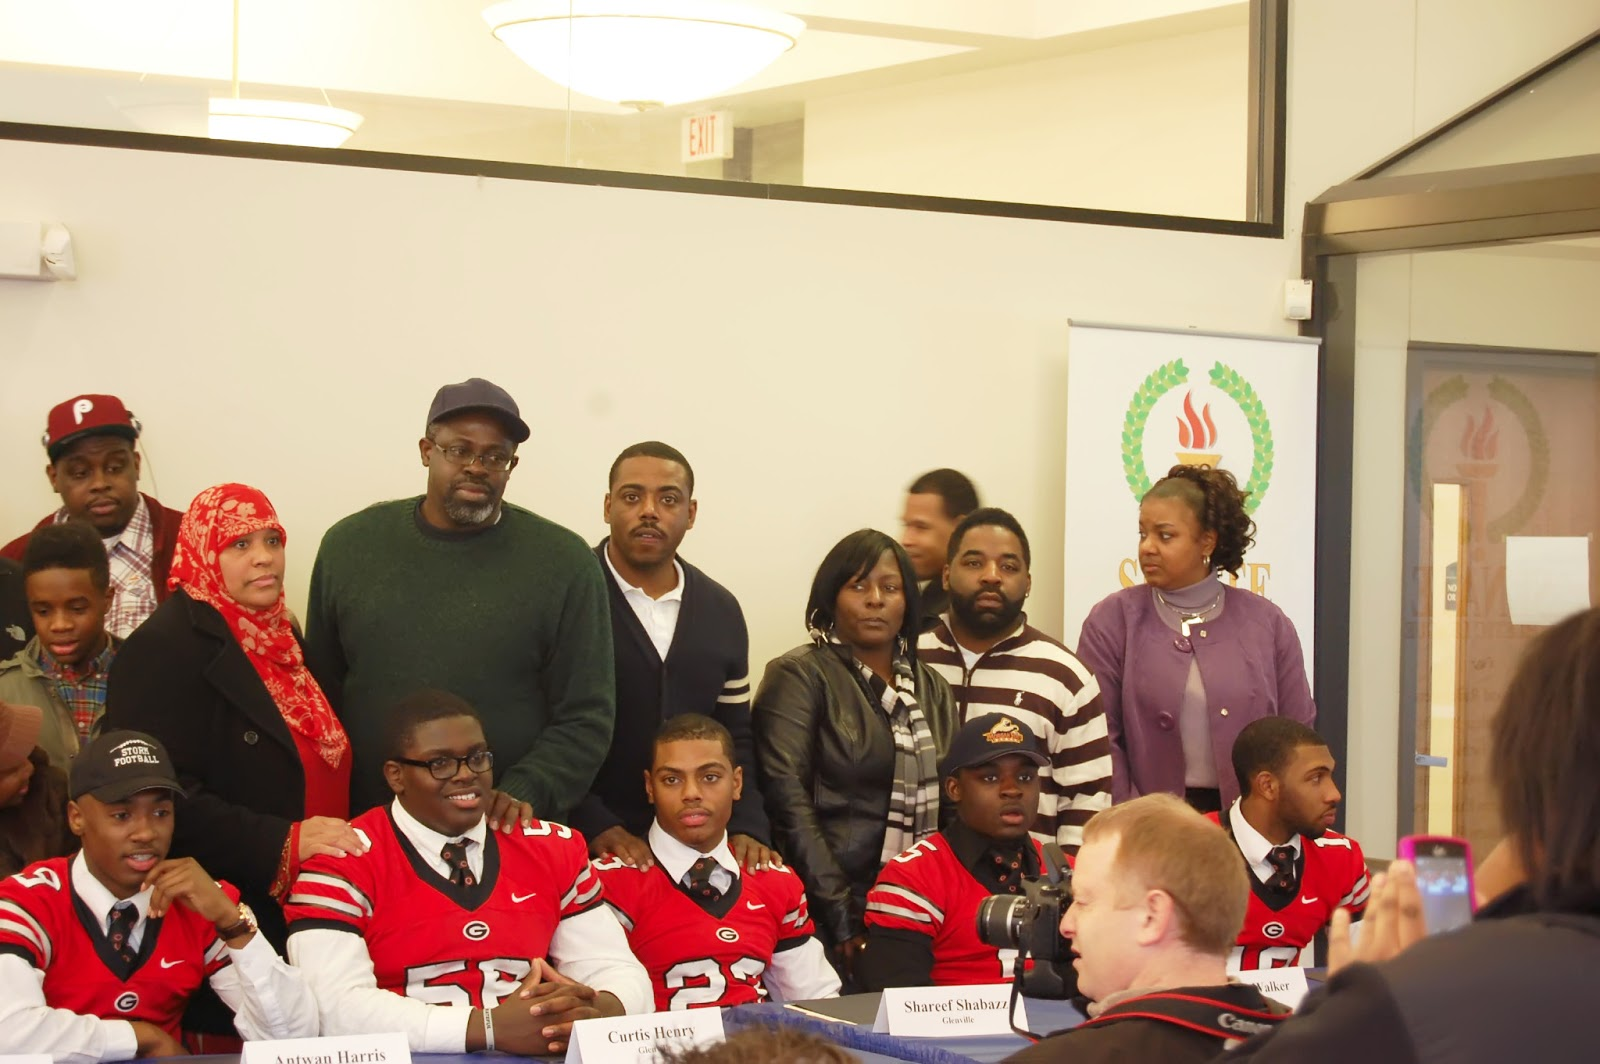 national letter of intent signing day the courage to be different the ginn academy 23751 | 49ERS 051